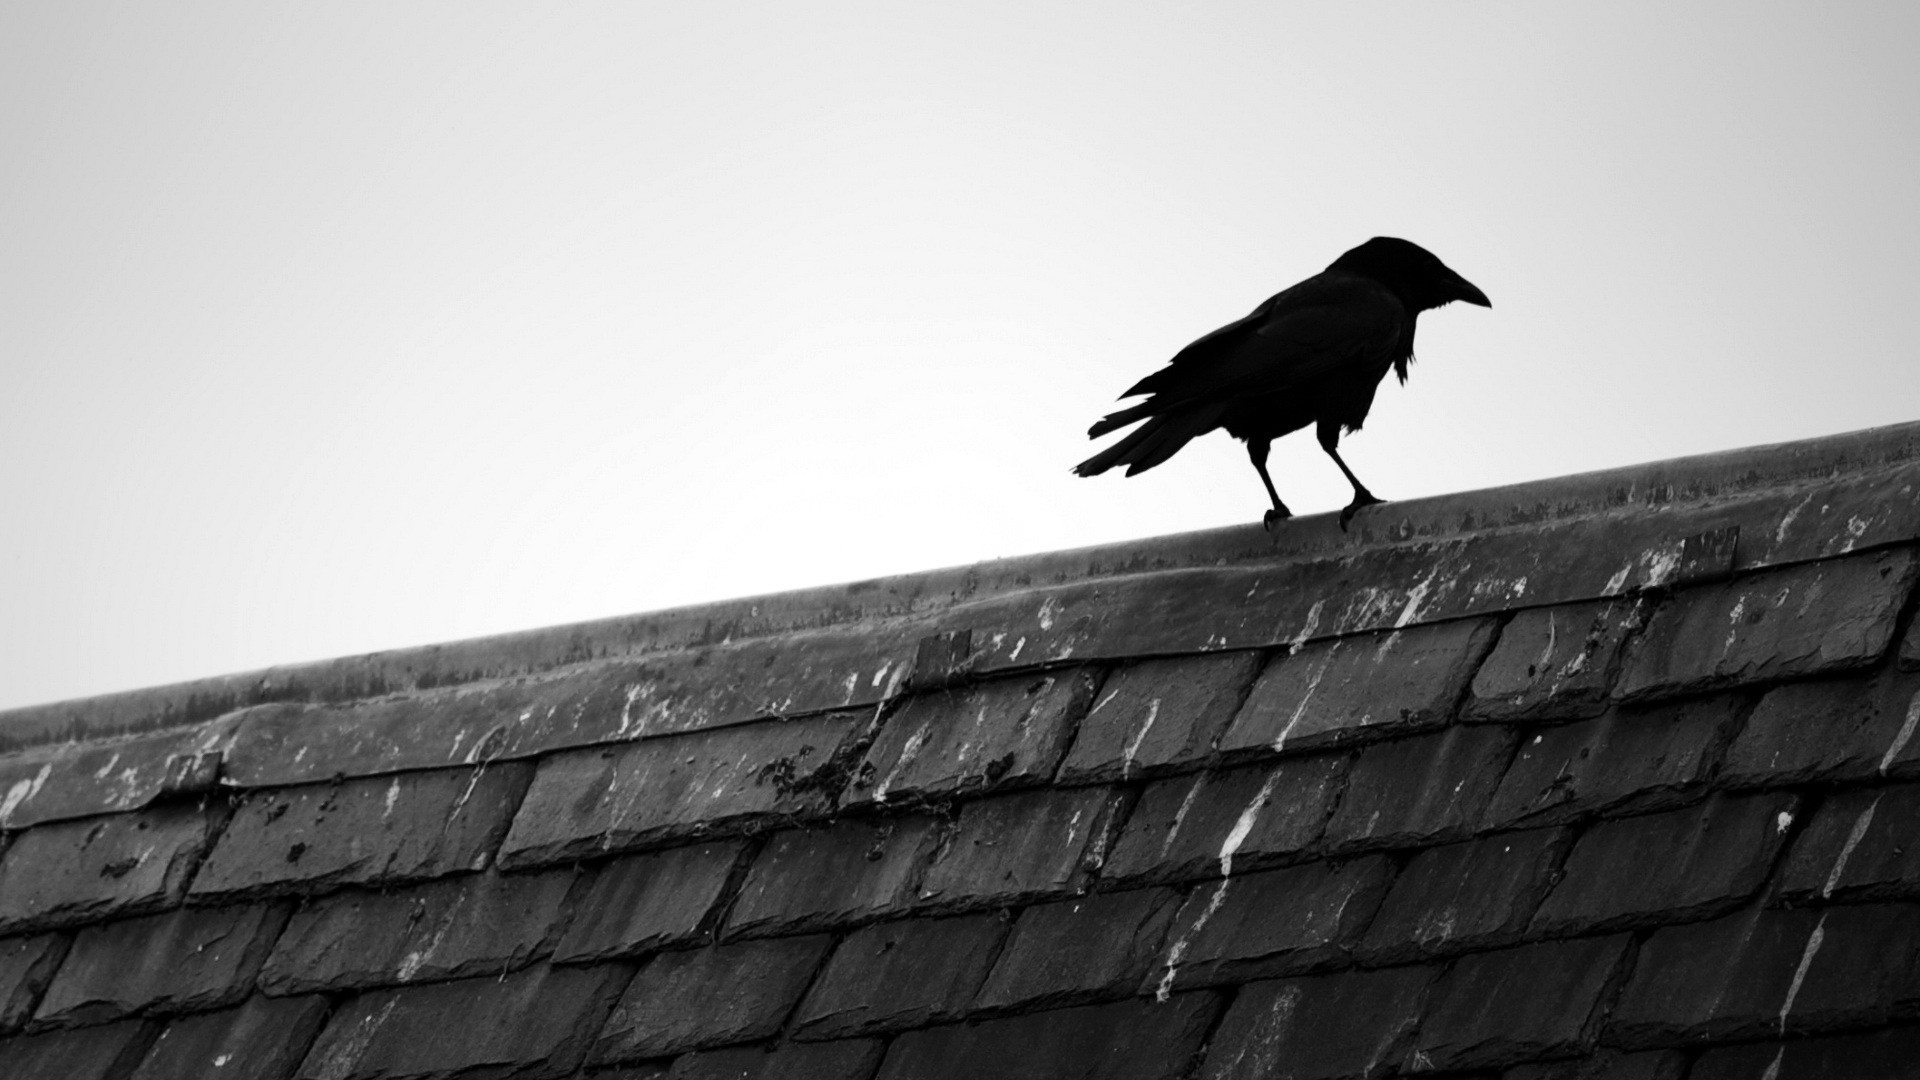 Get The Latest Raven Bird Roof News Pictures And Videos Learn All About From Wallpapers4uorg Your Wallpaper Source